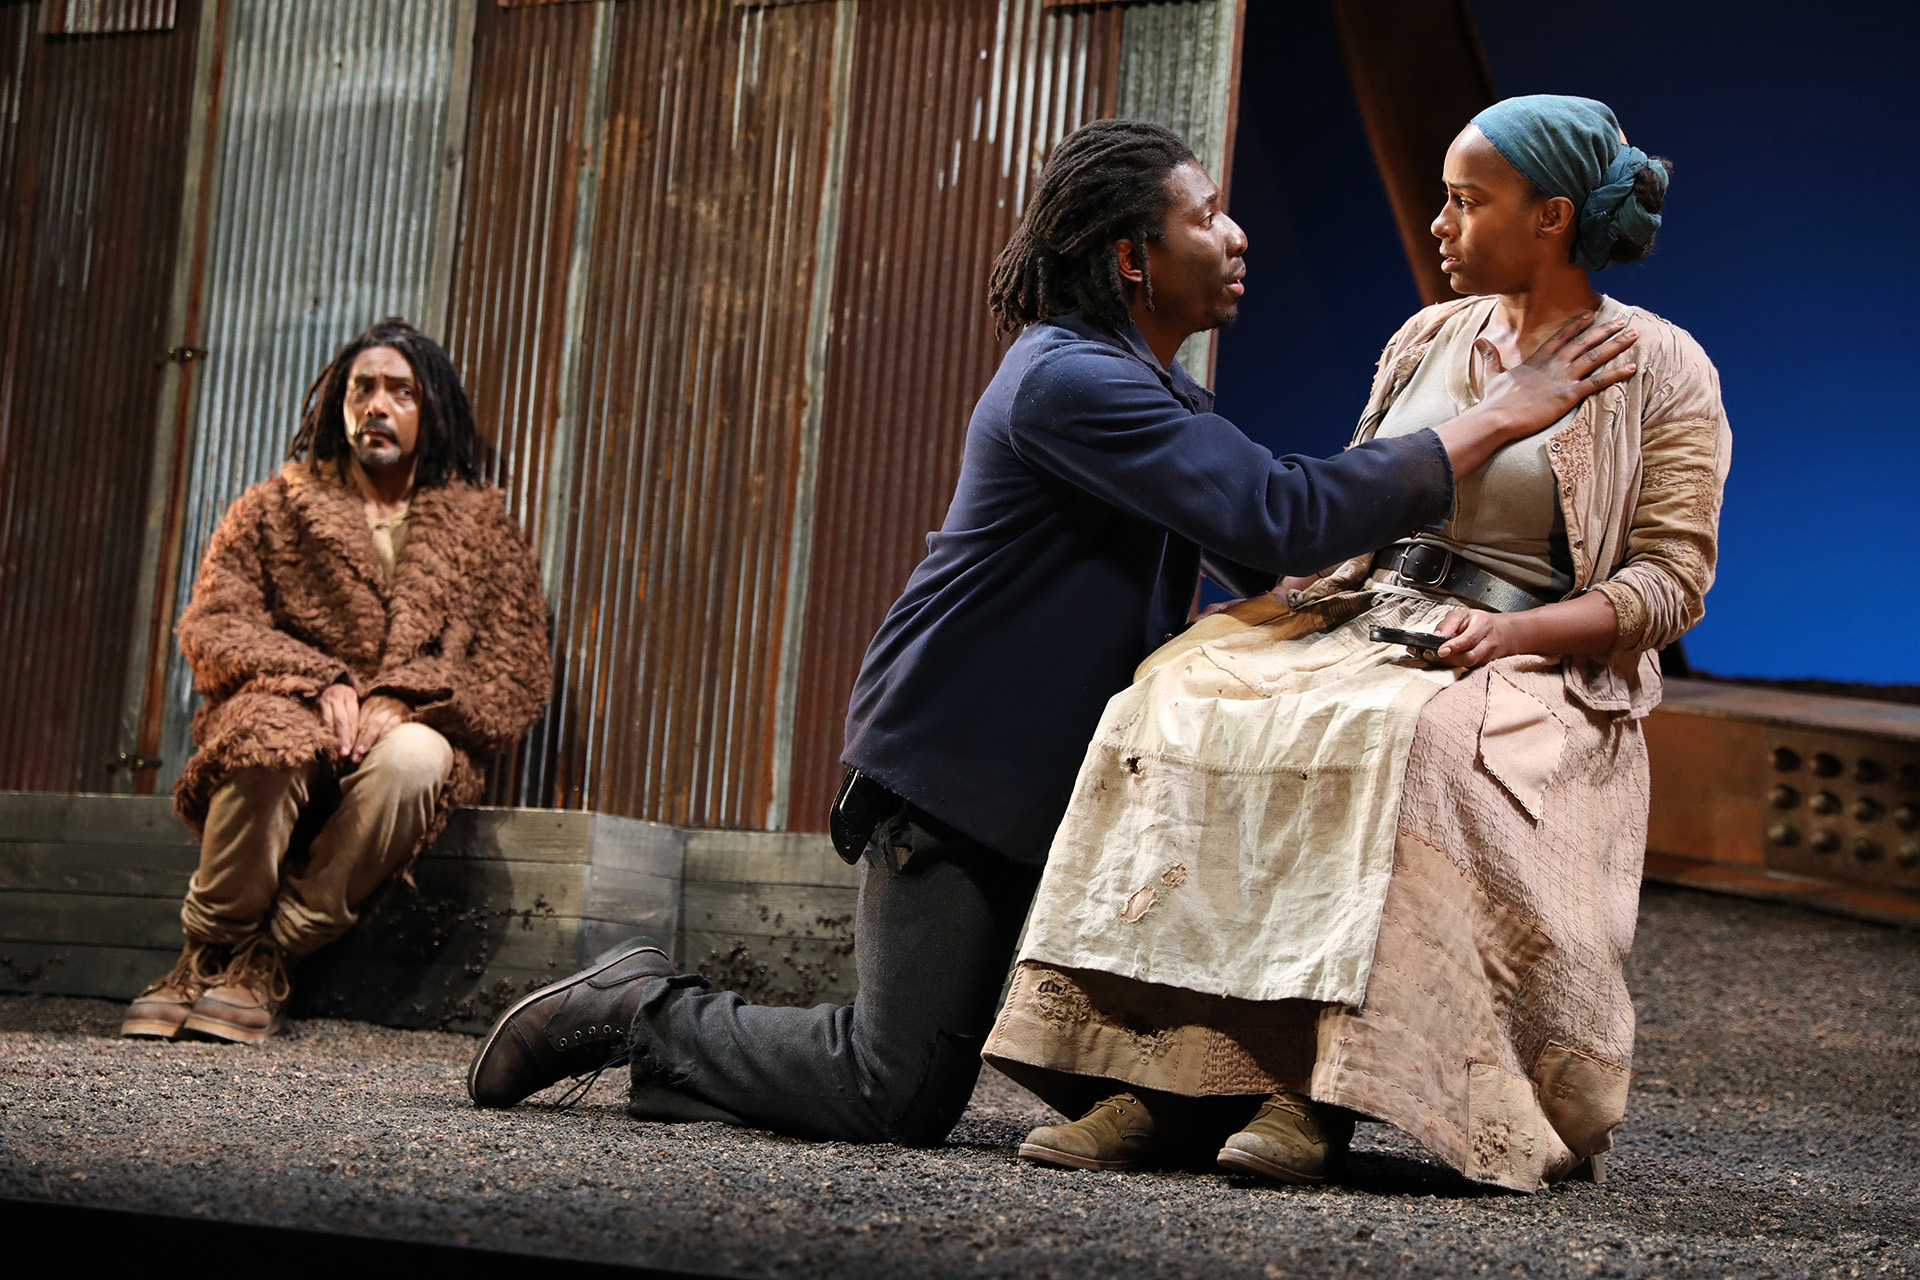 Gregory Wallace (Faculty), James Udom ('18), and Eboni Flowers in FATHER COMES HOME FROM THE WARS, PARTS 1, 2 & 3 by Suzan-Lori Parks, directed by Liz Diamond (Faculty), Yale Repertory Theatre, 2018. Photo by Joan Marcus.